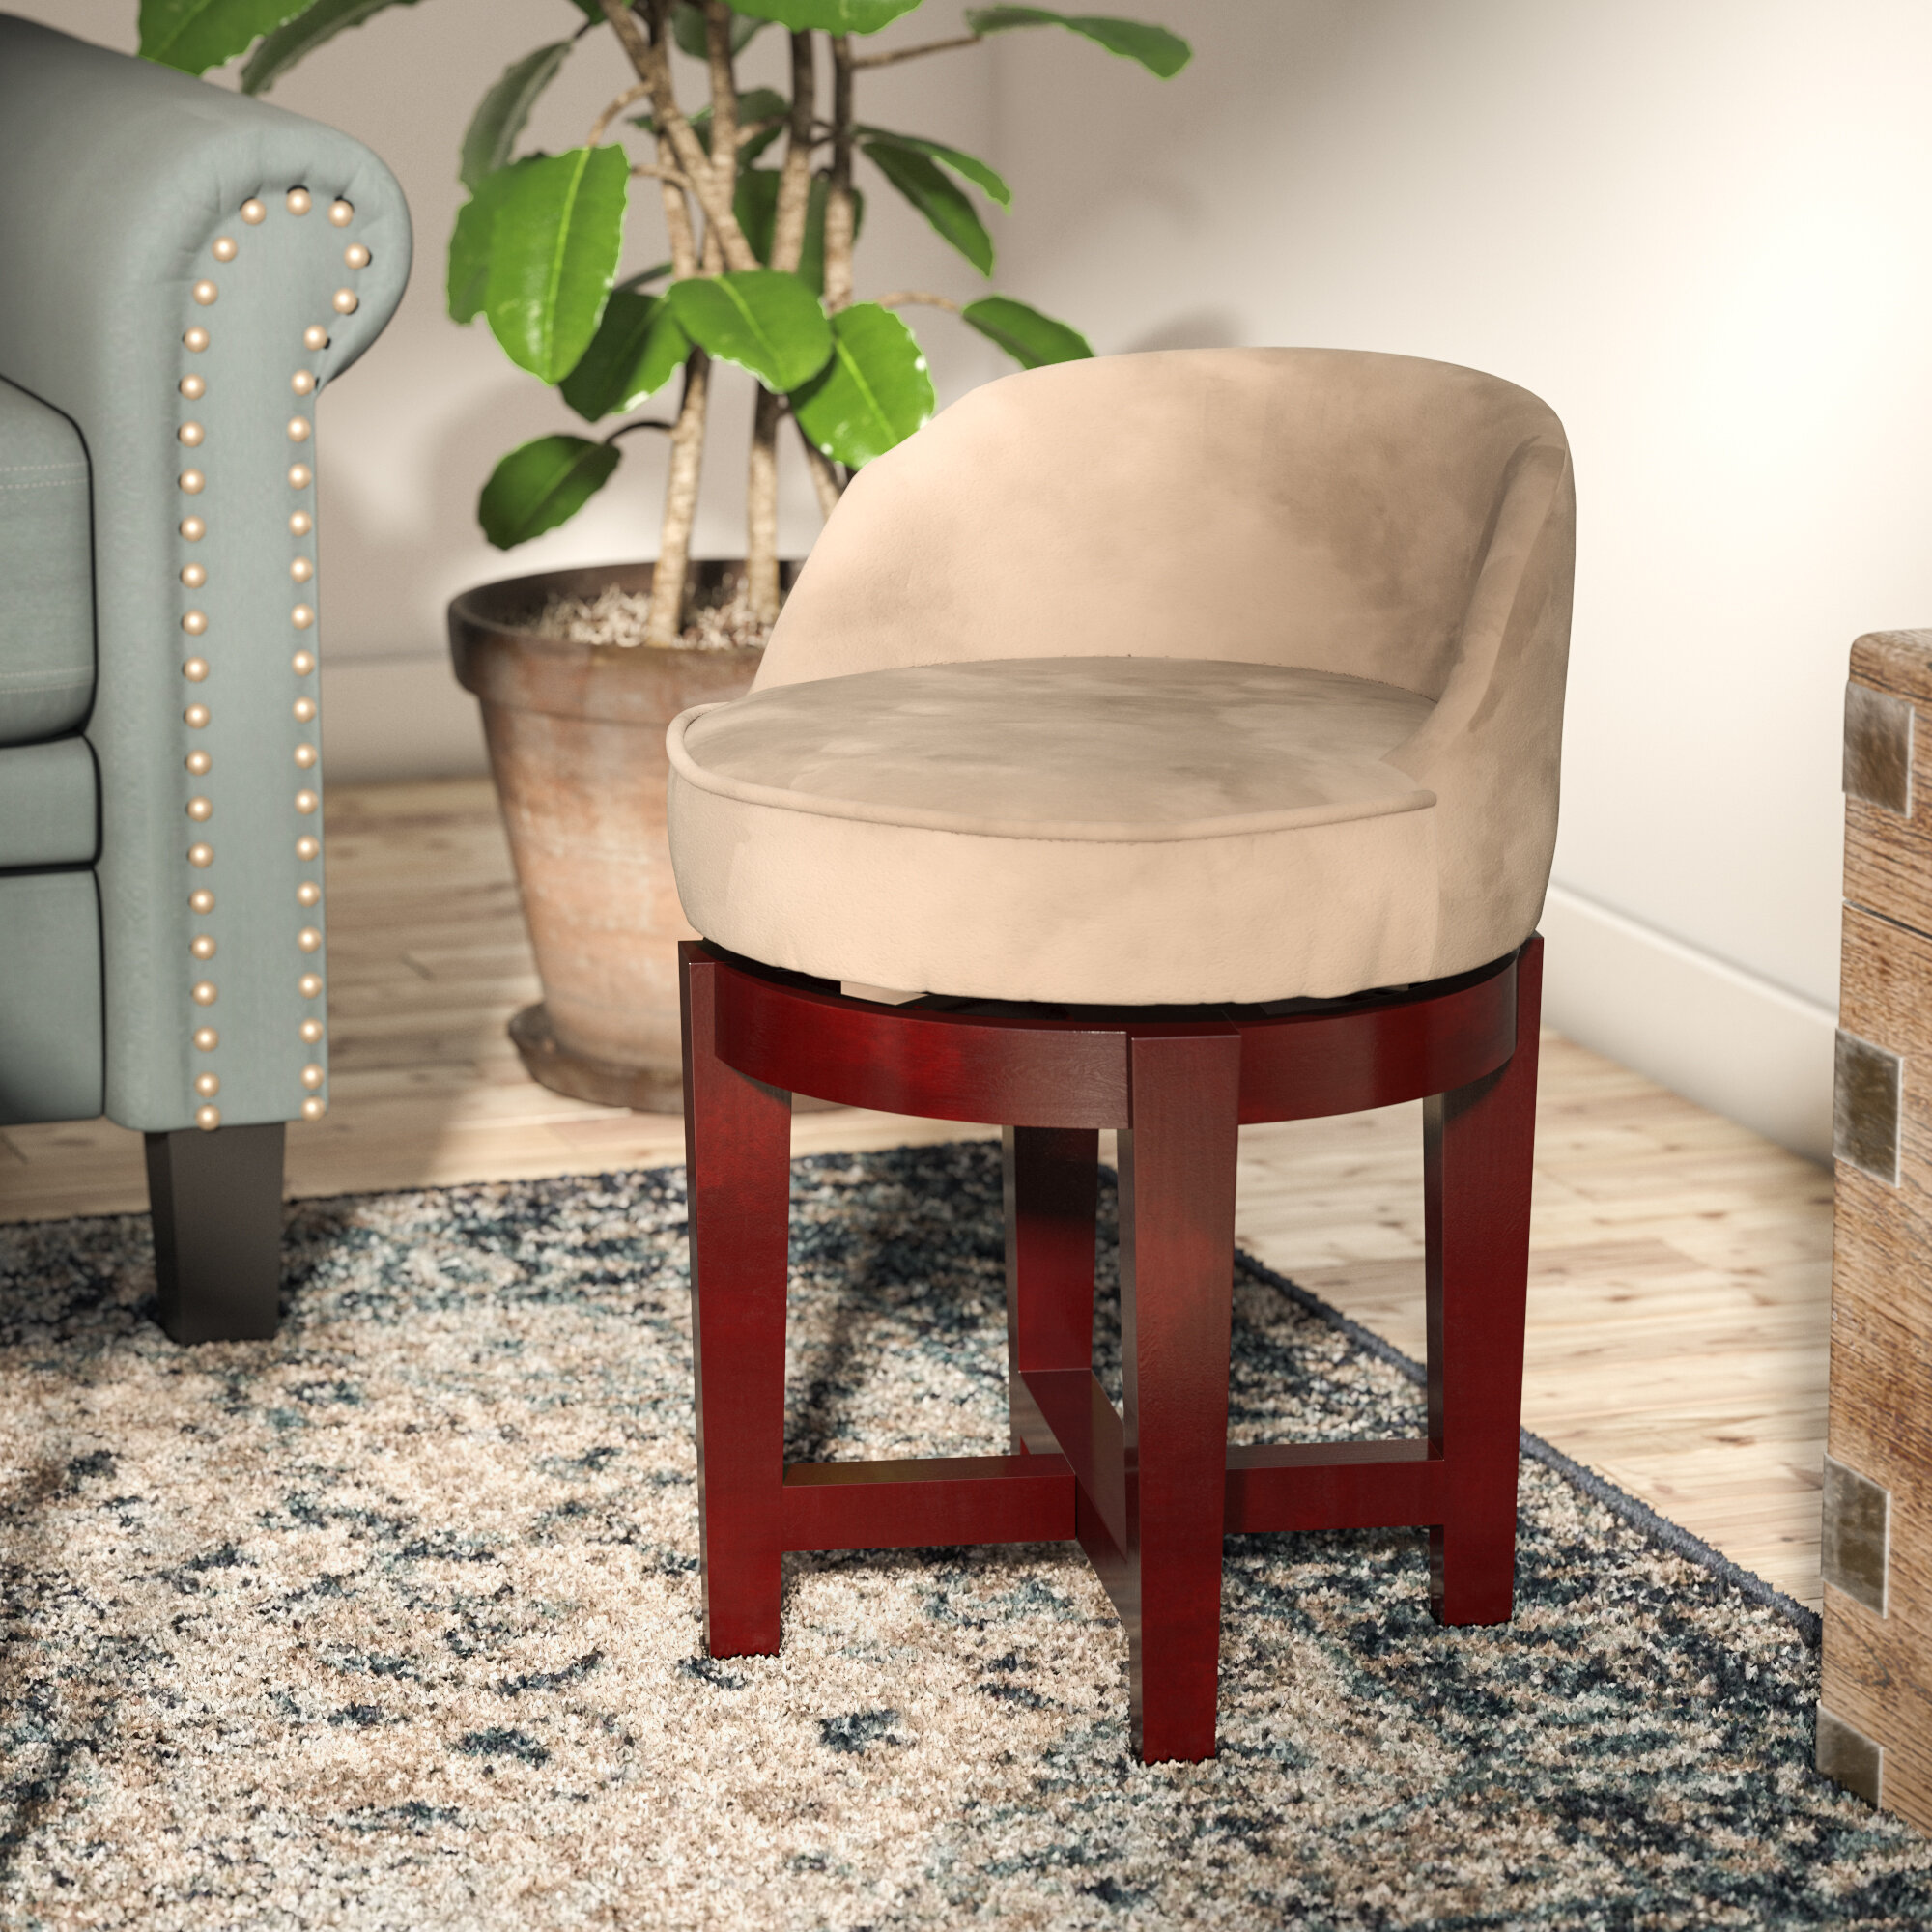 Incredible Stults Swivel Solid Wood Vanity Stool Squirreltailoven Fun Painted Chair Ideas Images Squirreltailovenorg